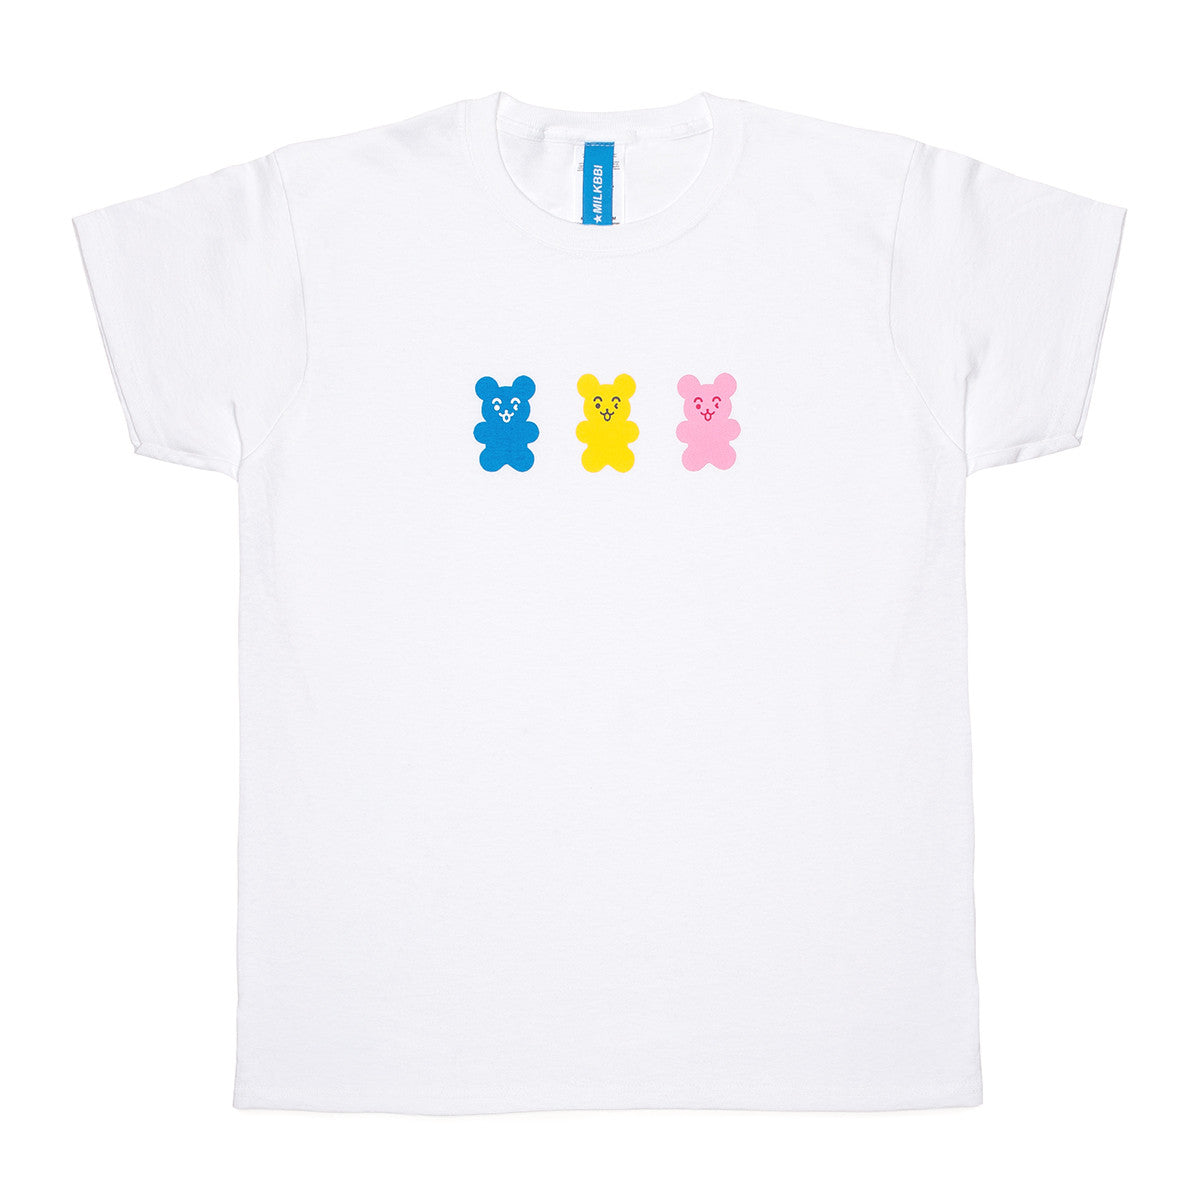 "WHITE ""BEAR MASCOT"" SHIRT (girls fit)"